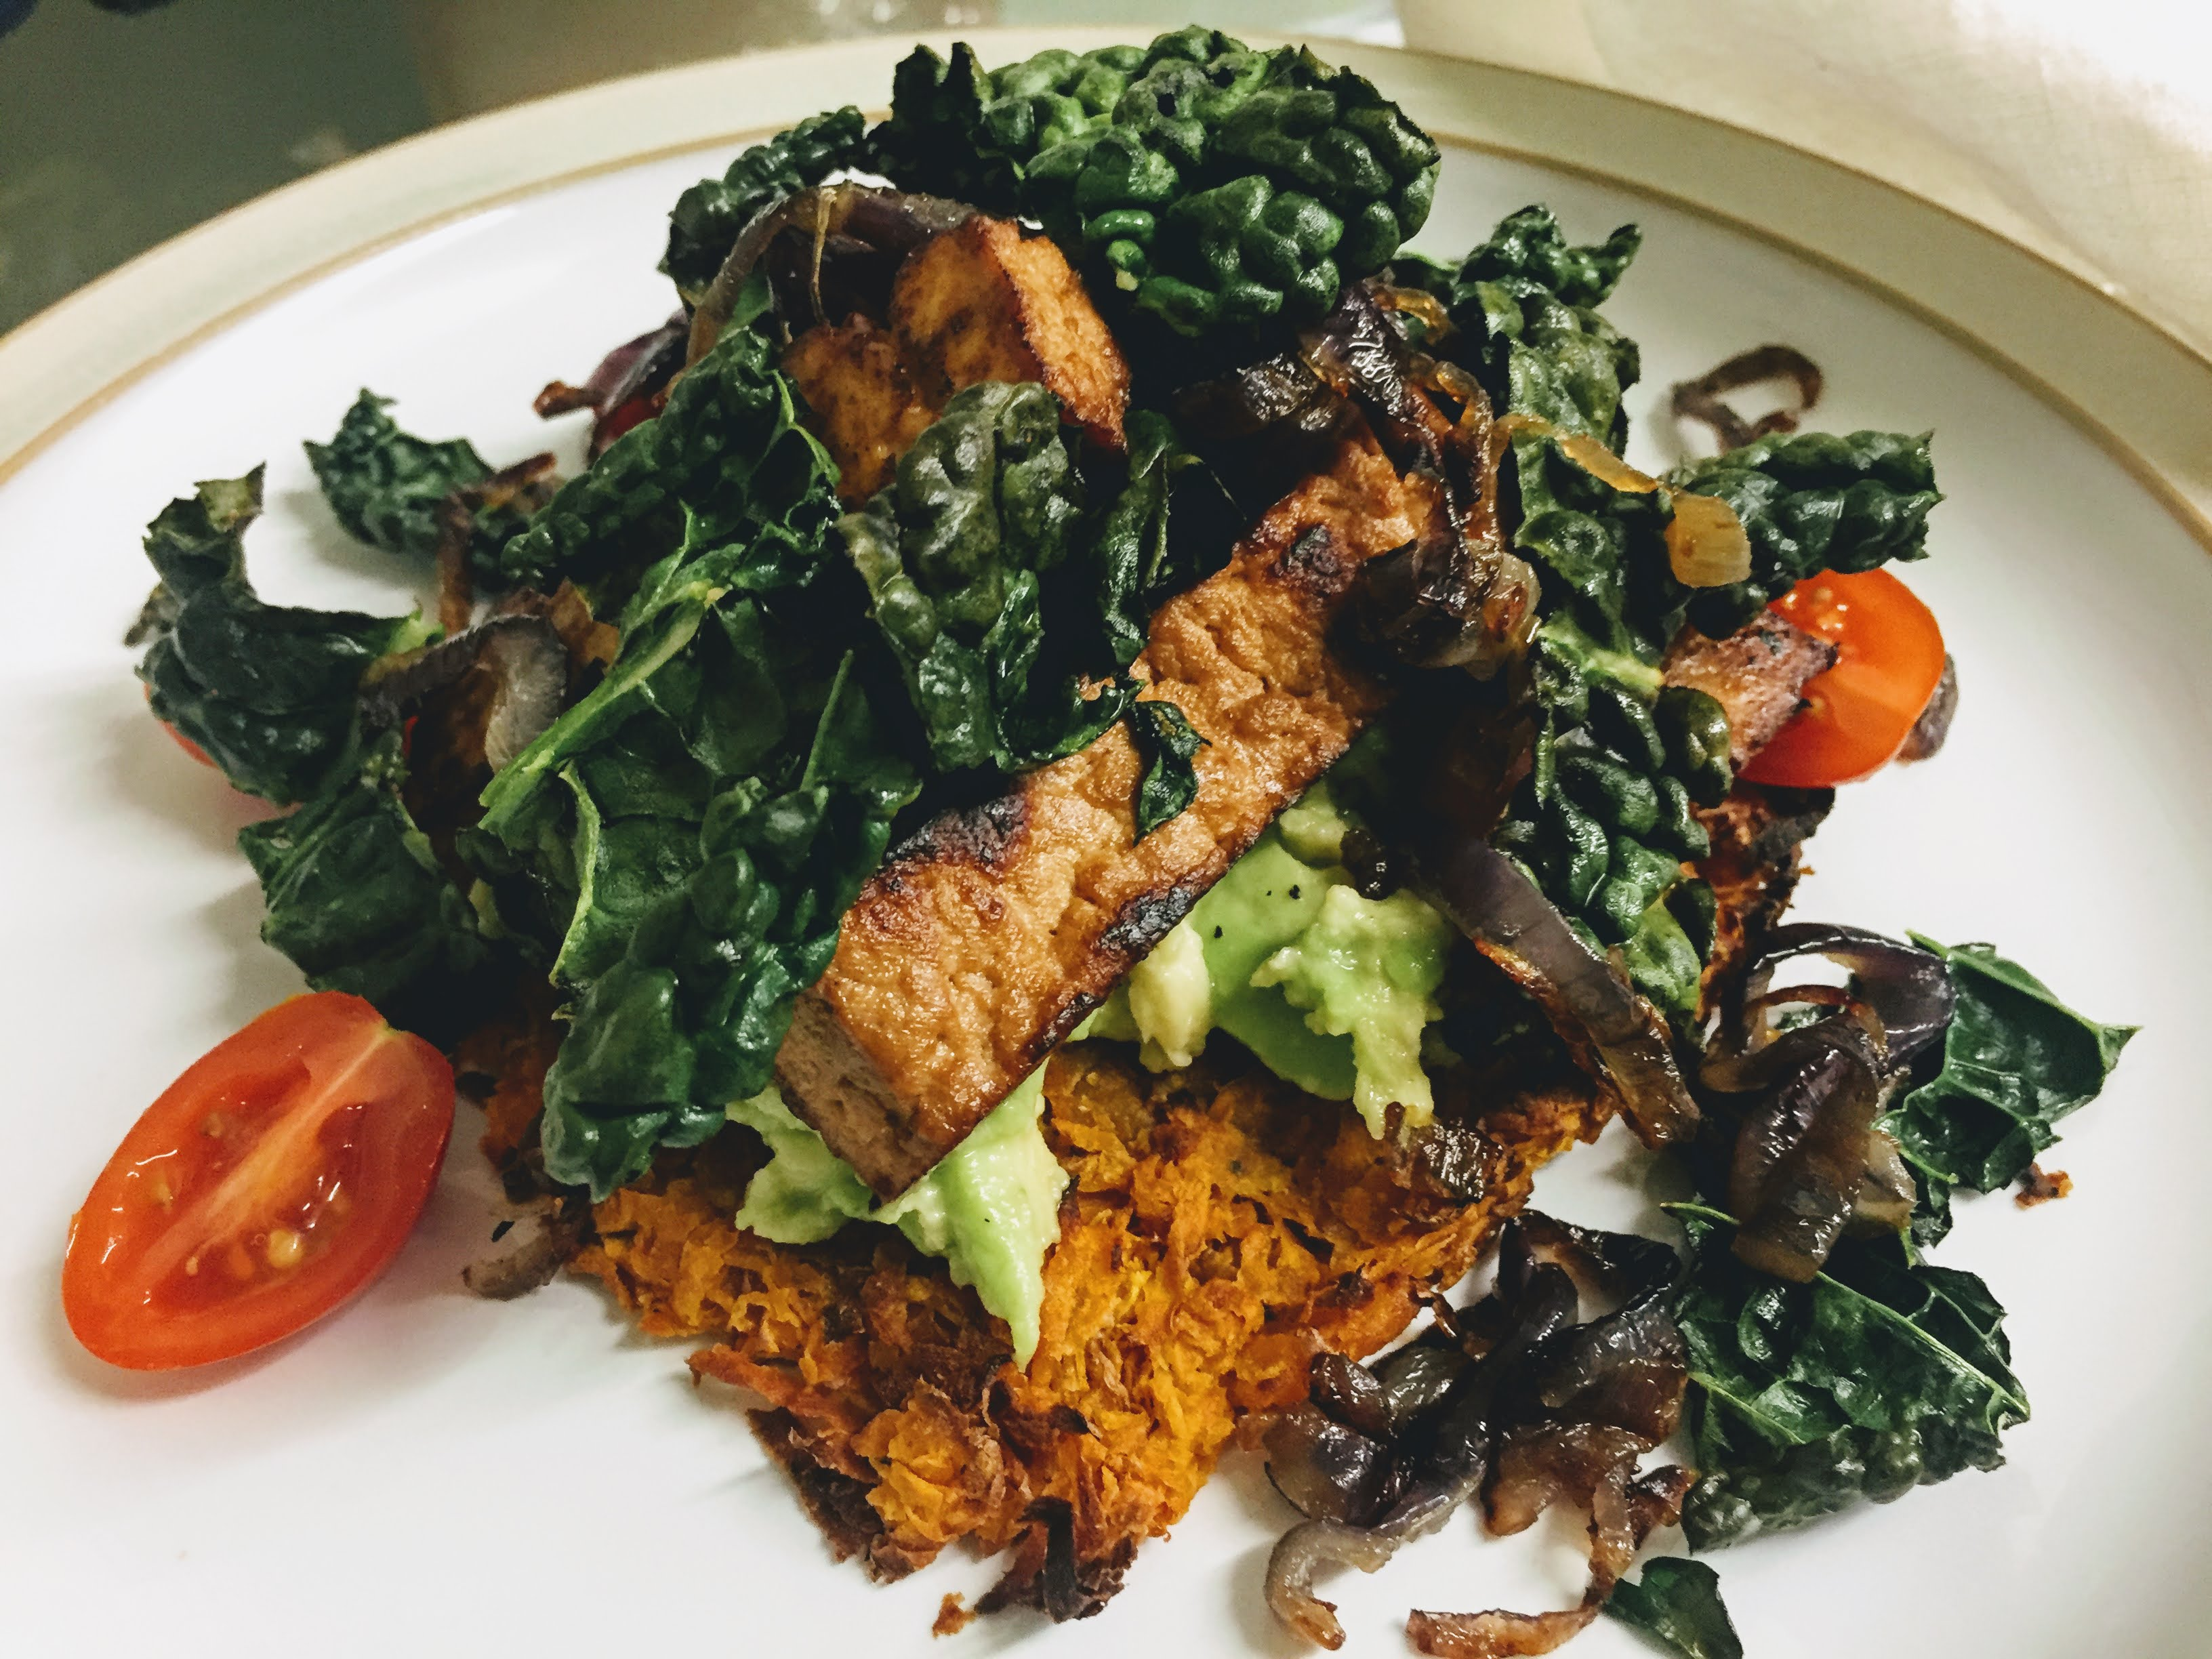 A side view of the finished dish. The sweet potato rösti is at the base, it's edges blackened slightly, and smothered in creamy smashed avocado. The fried tofu is nestled on top and everything is scattered with crispy kale and fried onions, with some cherry tomatoes peaking out.